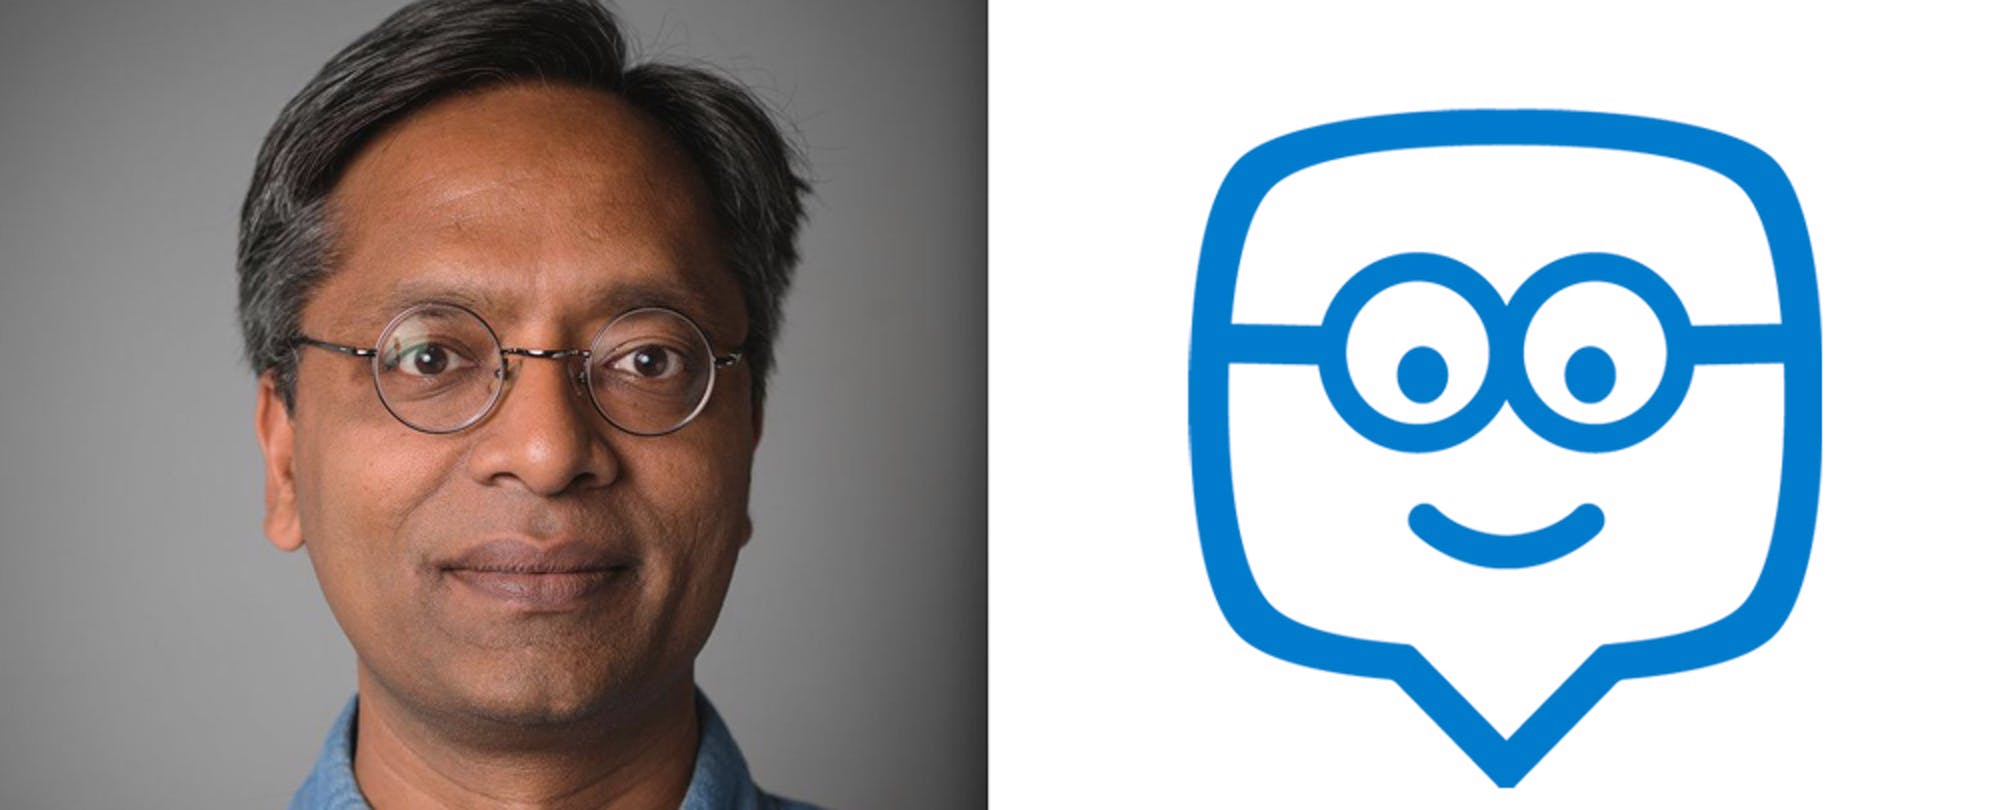 Edmodo Turns to Its Roots for a New CEO